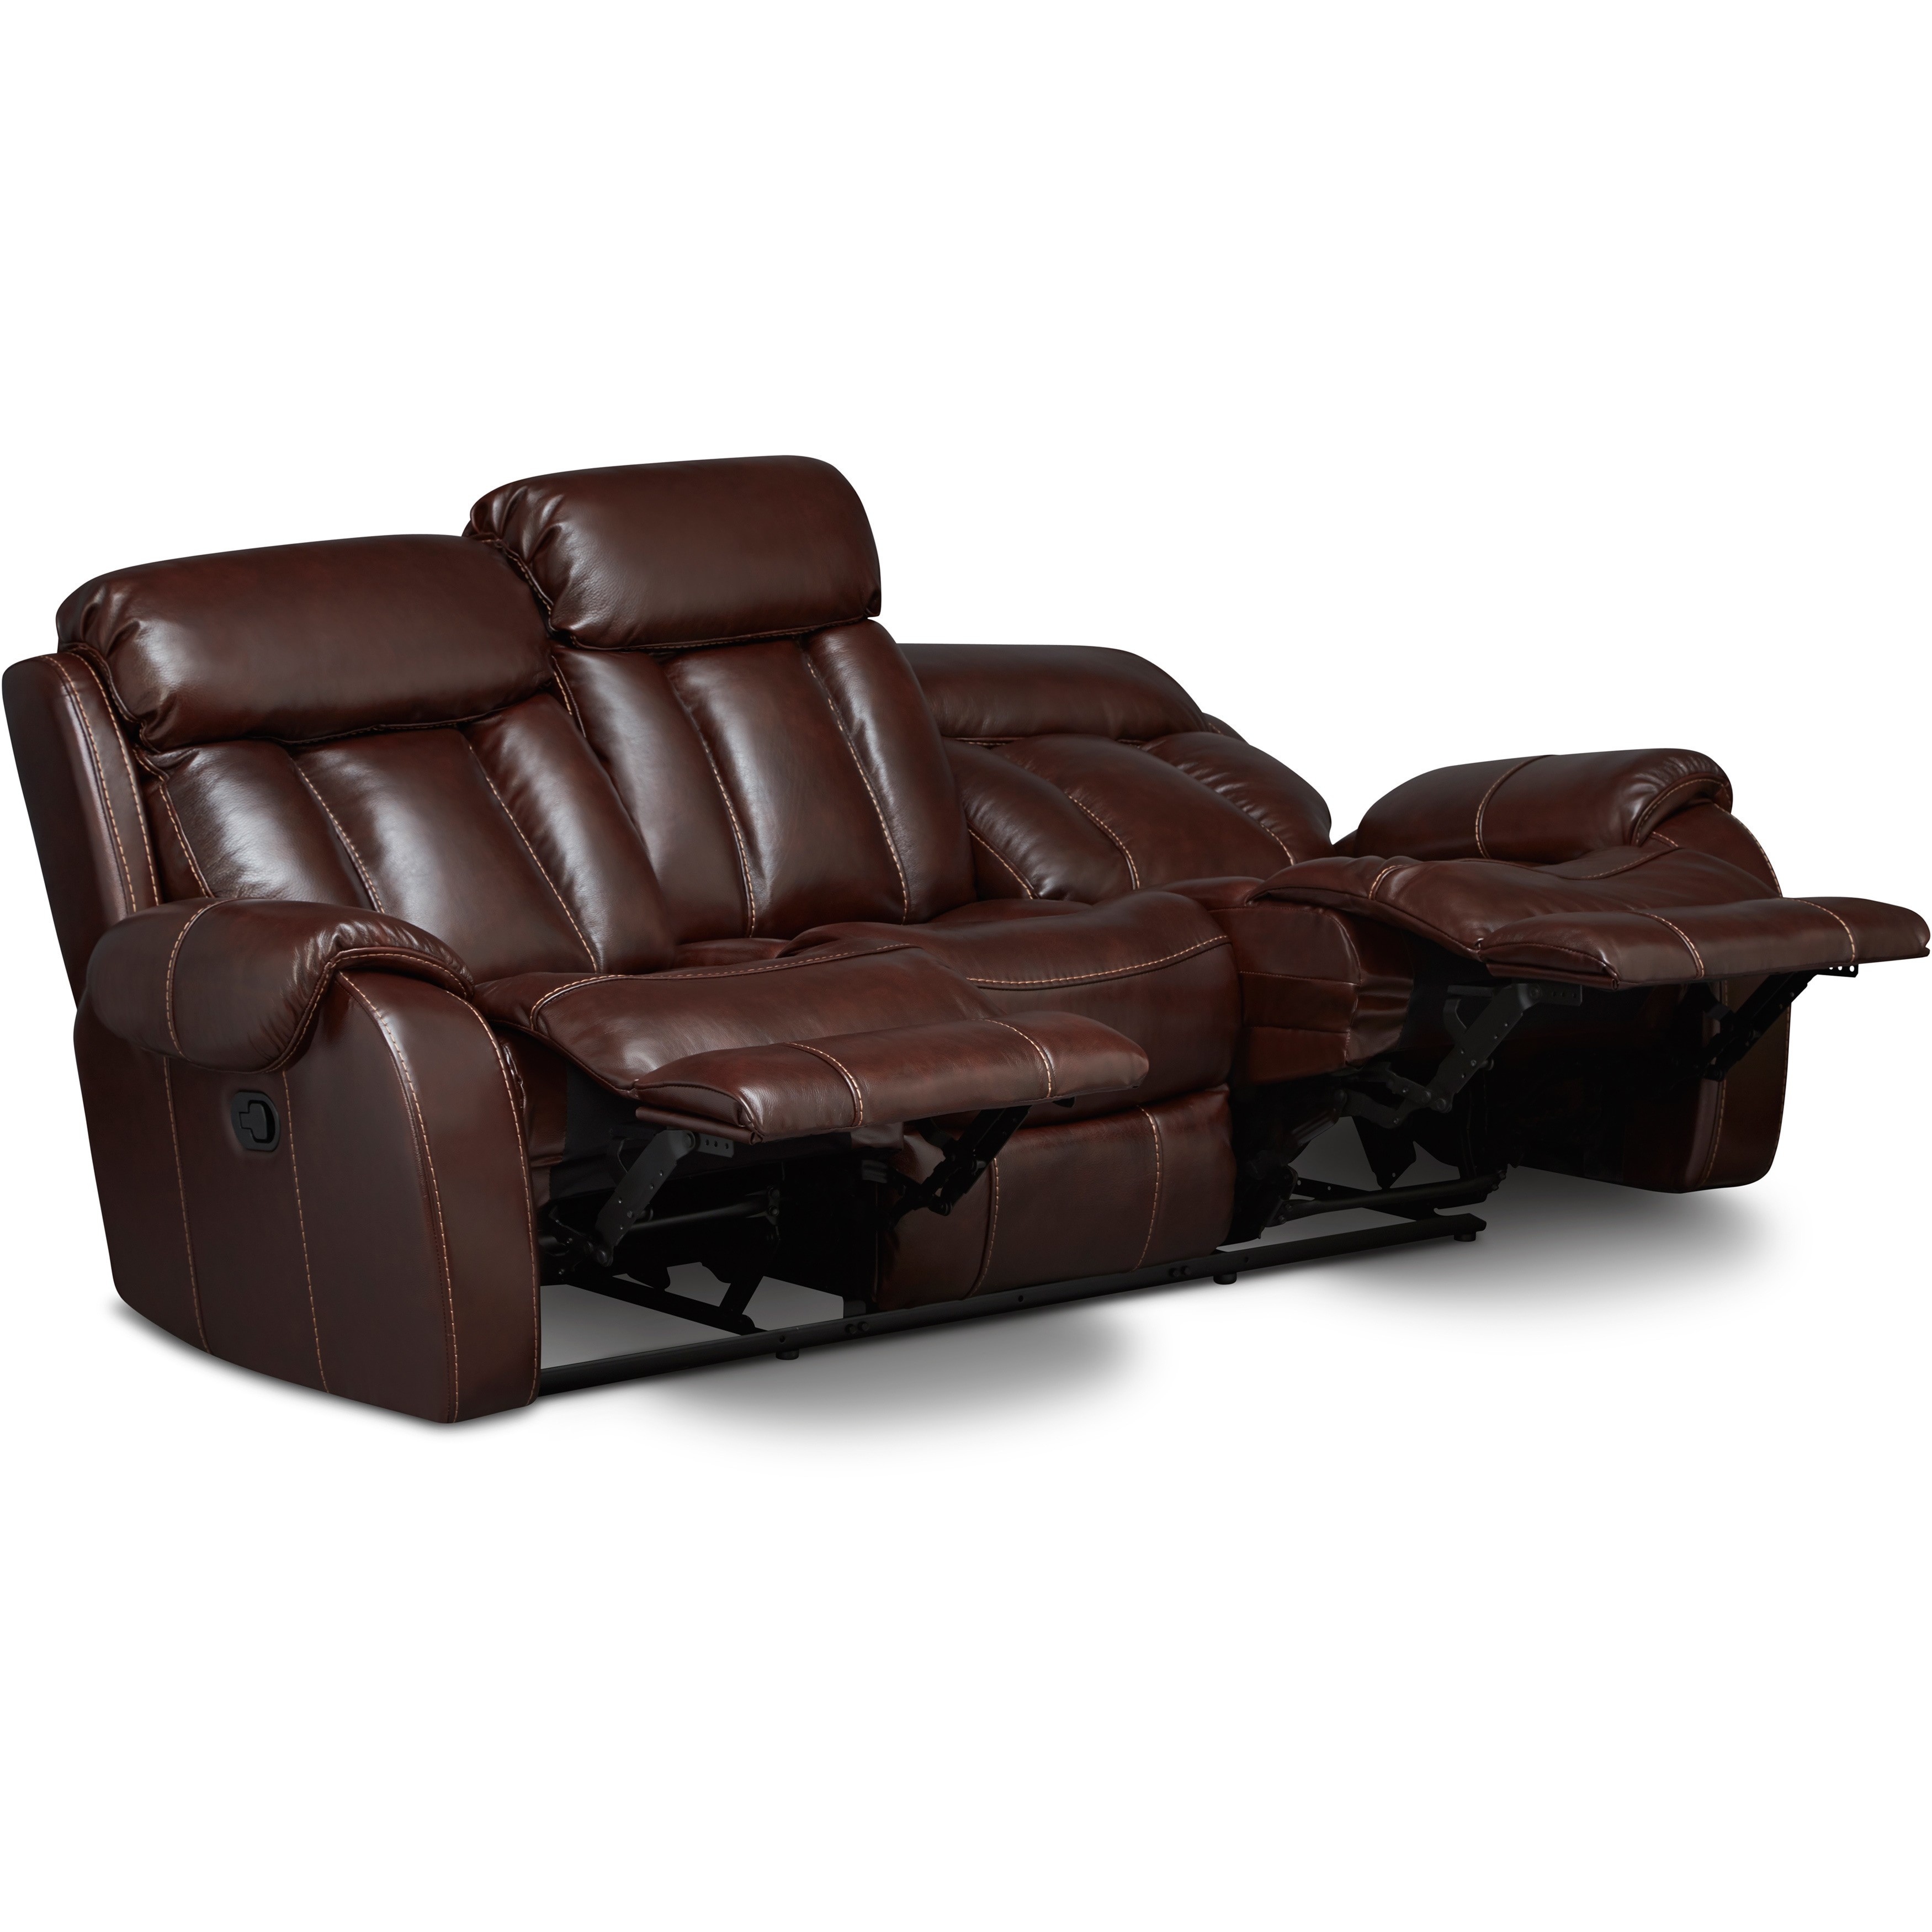 Awe Inspiring Bronson Leather Reclining Sofa Gmtry Best Dining Table And Chair Ideas Images Gmtryco